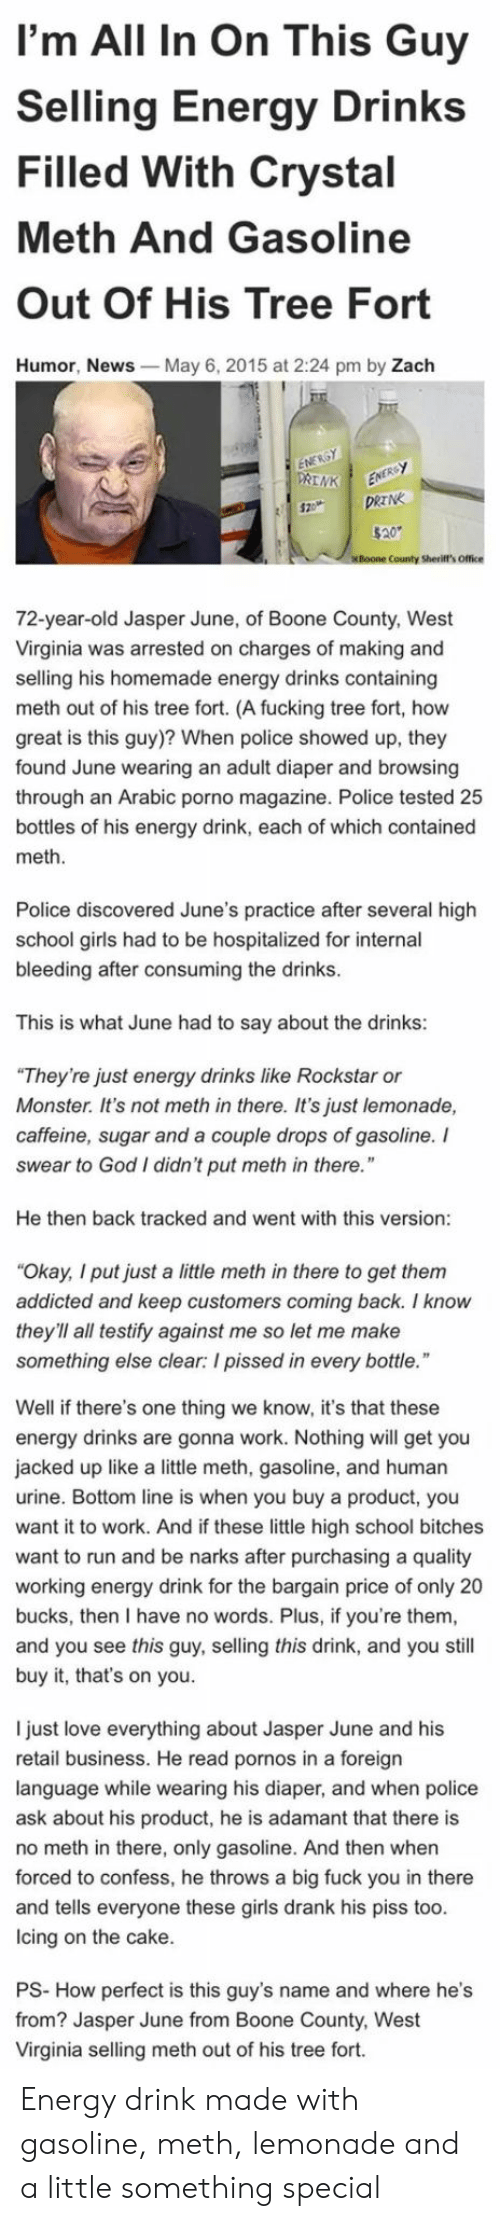 "Energy, Fuck You, and Fucking: I'm All In On This Guy  Selling Energy Drinks  Filled With Crystal  Meth And Gasoline  Out Of His Tree Fort  Humor, News  May 6, 2015 at 2:24 pm by Zach  County Sherift's Office  72-year-old Jasper June, of Boone County, West  Virginia was arrested on charges of making and  selling his homemade energy drinks containing  meth out of his tree fort. (A fucking tree fort, how  great is this guy)? When police showed up, they  found June wearing an adult diaper and browsing  through an Arabic porno magazine. Police tested 25  bottles of his energy drink, each of which contained  meth  Police discovered June's practice after several high  school girls had to be hospitalized for internal  bleeding after consuming the drinks  This is what June had to say about the drinks:  They're just energy drinks like Rockstar or  Monster. It's not meth in there. It's just lemonade,  caffeine, sugar and a couple drops of gasoline. I  swear to God I didn't put meth in there.""  He then back tracked and went with this version  Okay, I put just a little meth in there to get them  addicted and keep customers coming back. I know  they'll all testify against me so let me make  something else clear: I pissed in every bottle  Well if there's one thing we know, it's that these  energy drinks are gonna work. Nothing will get you  jacked up like a little meth, gasoline, and human  urine. Bottom line is when you buy a product, you  want it to work. And if these little high school bitches  want to run and be narks after purchasing a quality  working energy drink for the bargain price of only 20  bucks, then I have no words. Plus, if you're them  and you see this guy, selling this drink, and you still  buy it, that's on you.  I just love everything about Jasper June and his  retail business. He read pornos in a foreign  language while wearing his diaper, and when police  ask about his product, he is adamant that there is  no meth in there, only gasoline. And then when  forced to confess, he throws a big fuck you in there  and tells everyone these girls drank his piss too  lcing on the cake  PS- How perfect is this guy's name and where he's  from? Jasper June from Boone County, West  Virginia selling meth out of his tree fort. Energy drink made with gasoline, meth, lemonade and a little something special"